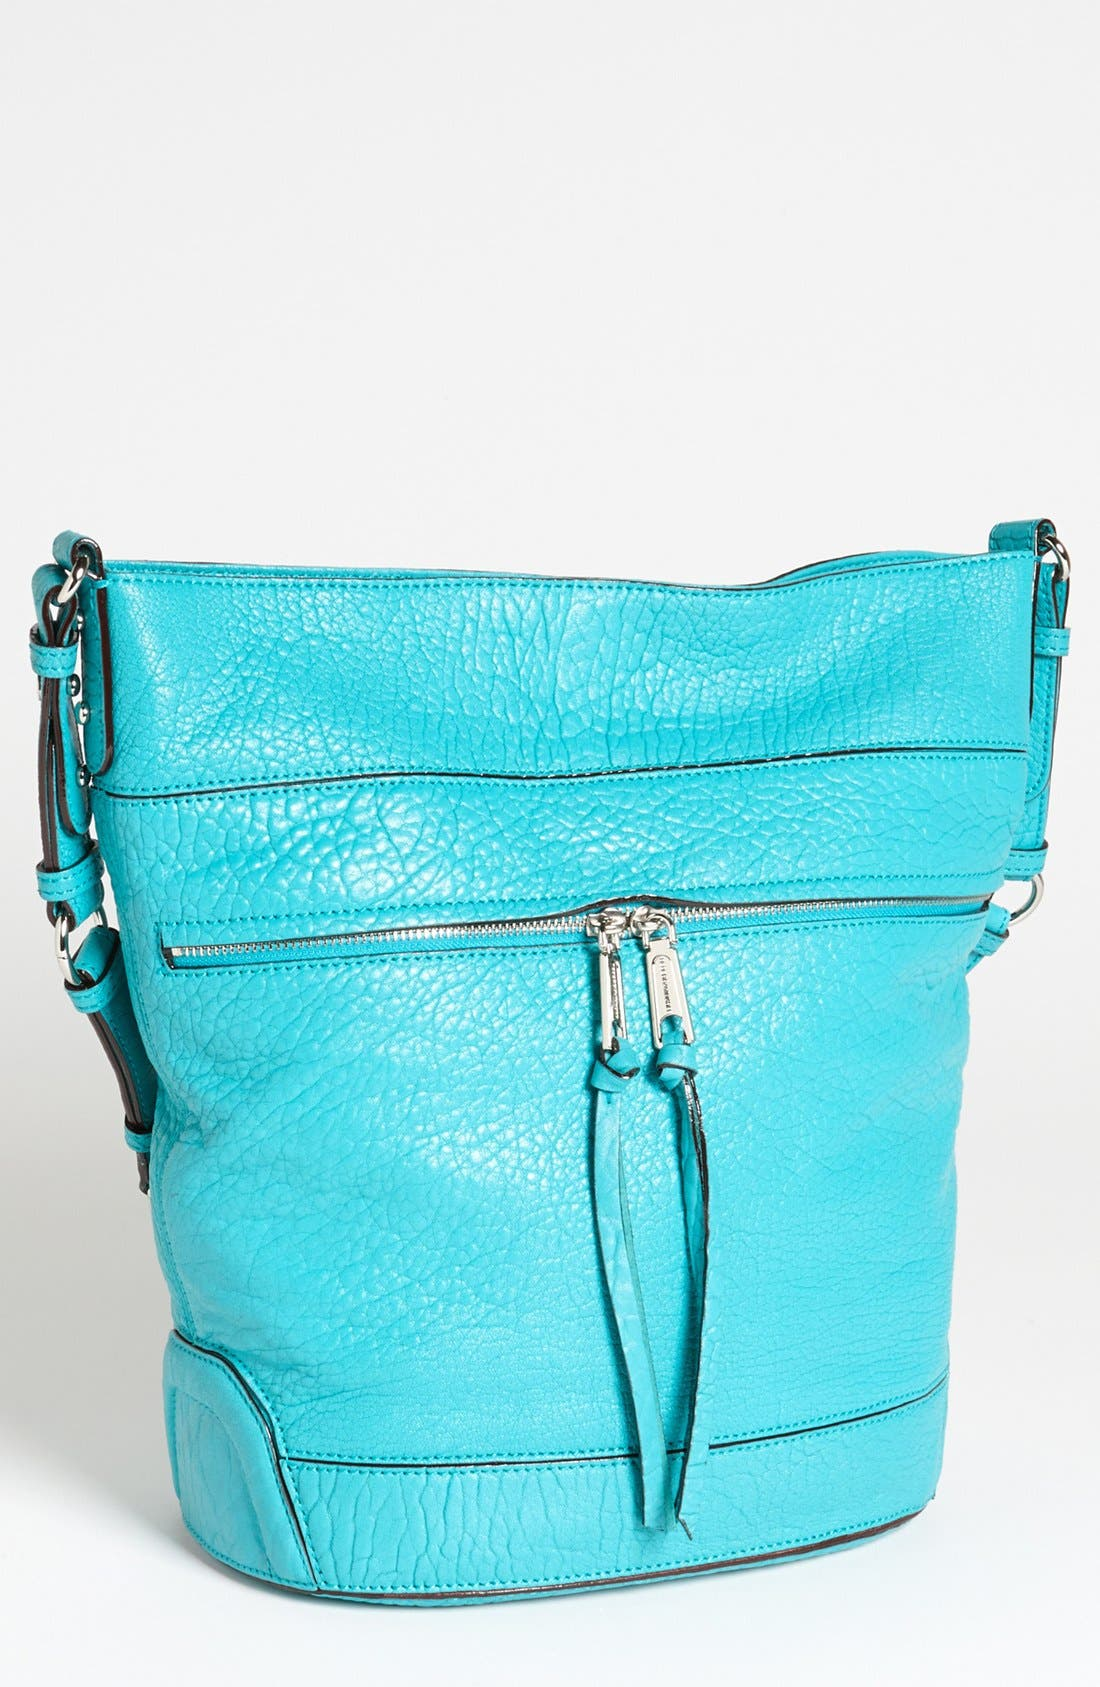 Main Image - Rebecca Minkoff 'Bubble - Quinn' Bucket Bag